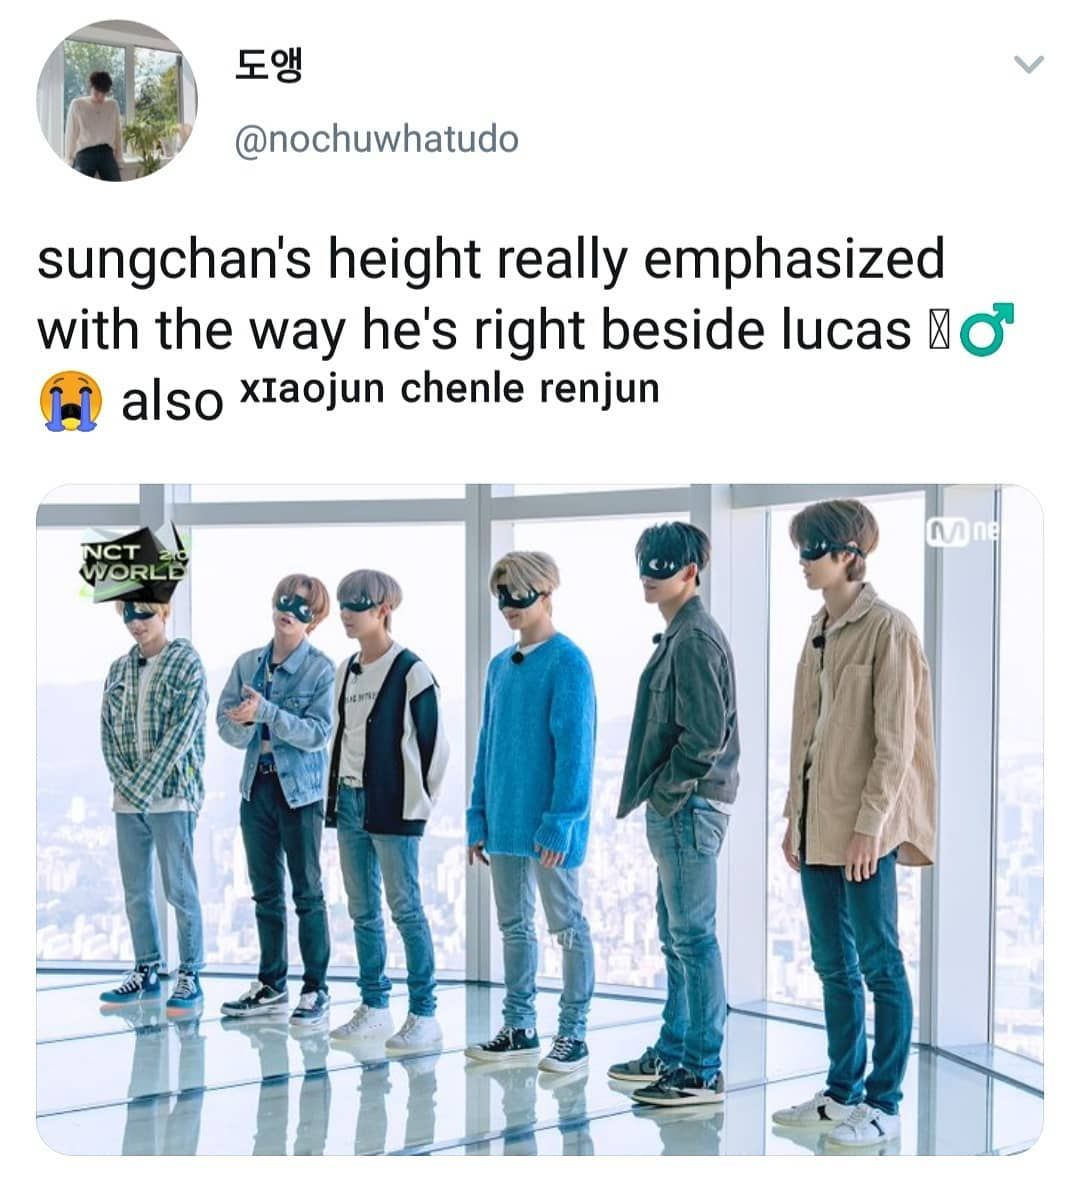 Awesome Lucas Kpop Height wallpapers to download for free greenvirals